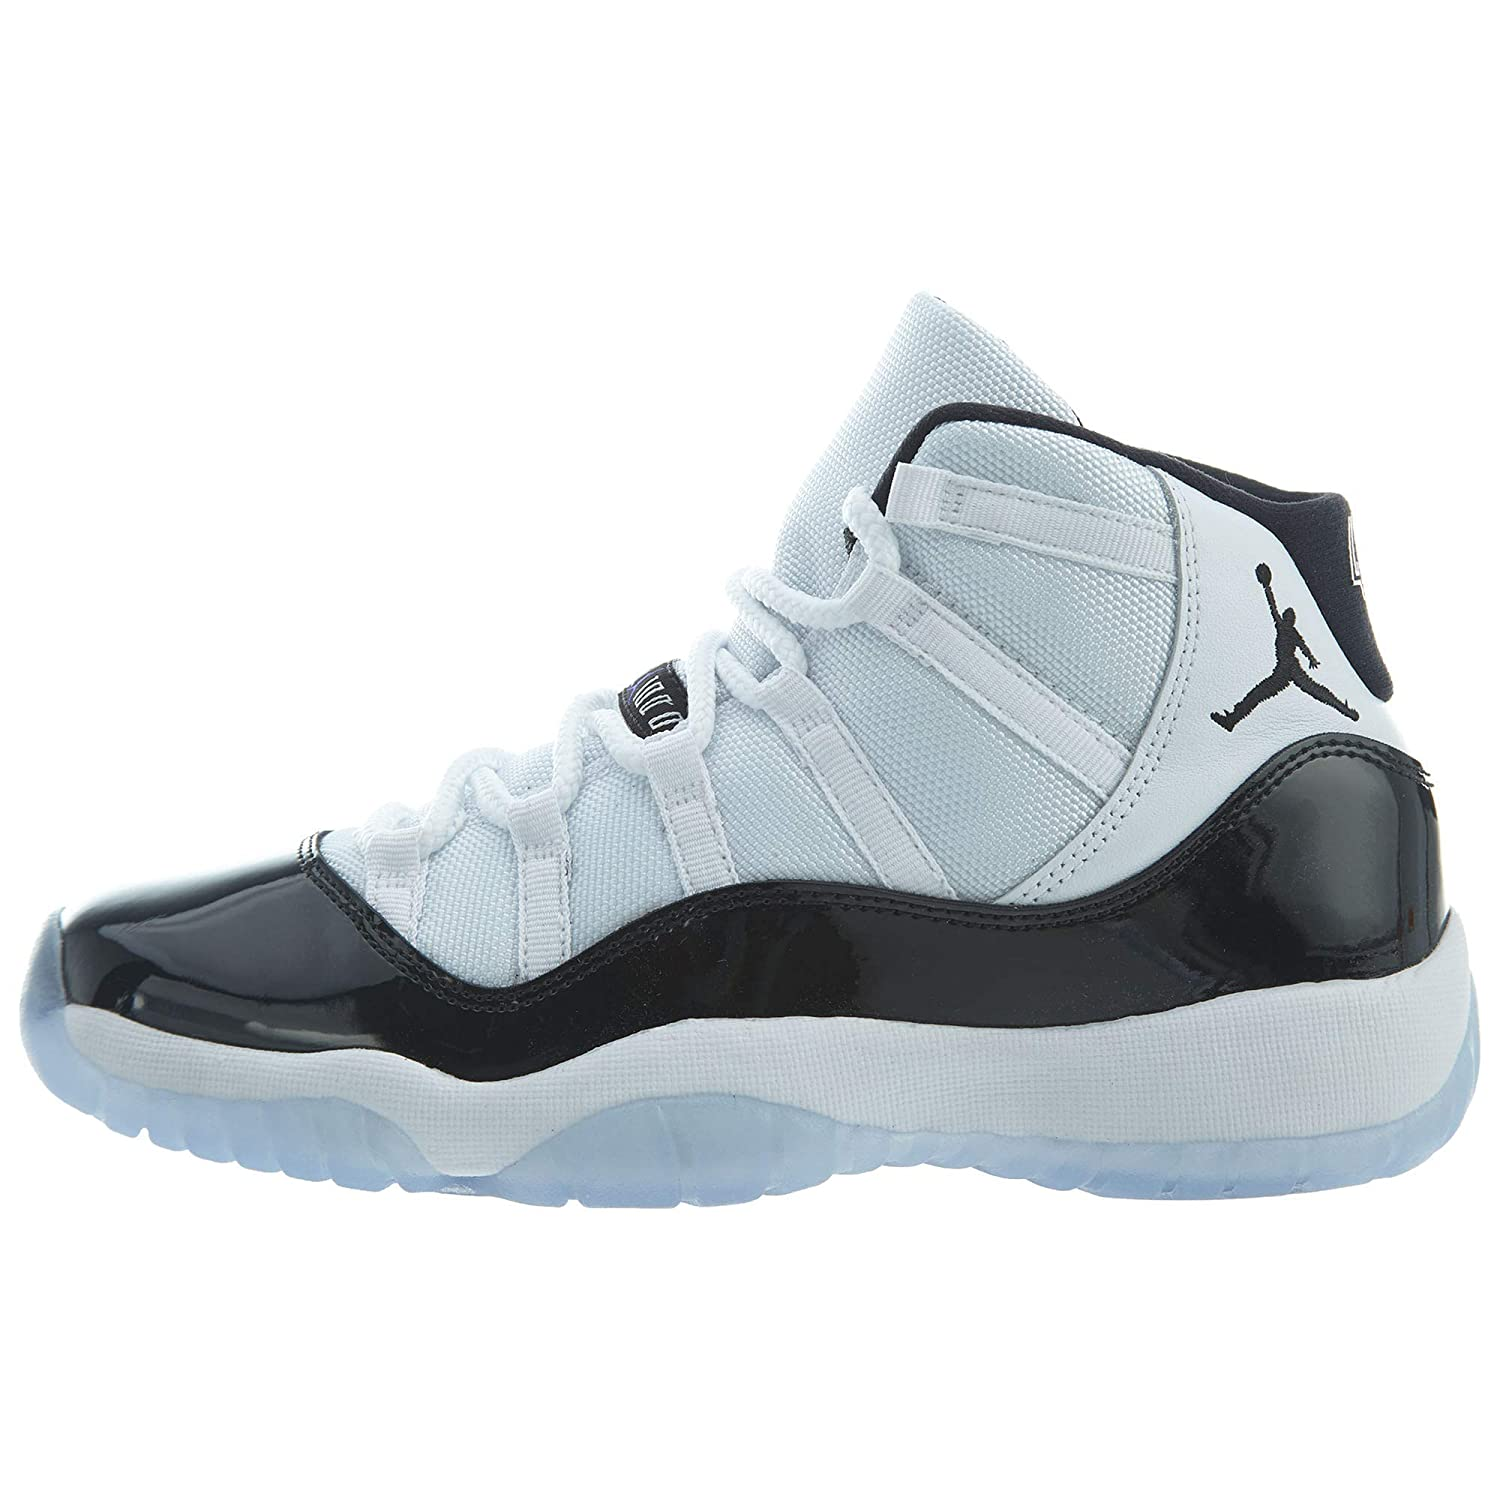 reputable site 6a816 5fb17 Nike Big Kids Jordan Retro 11